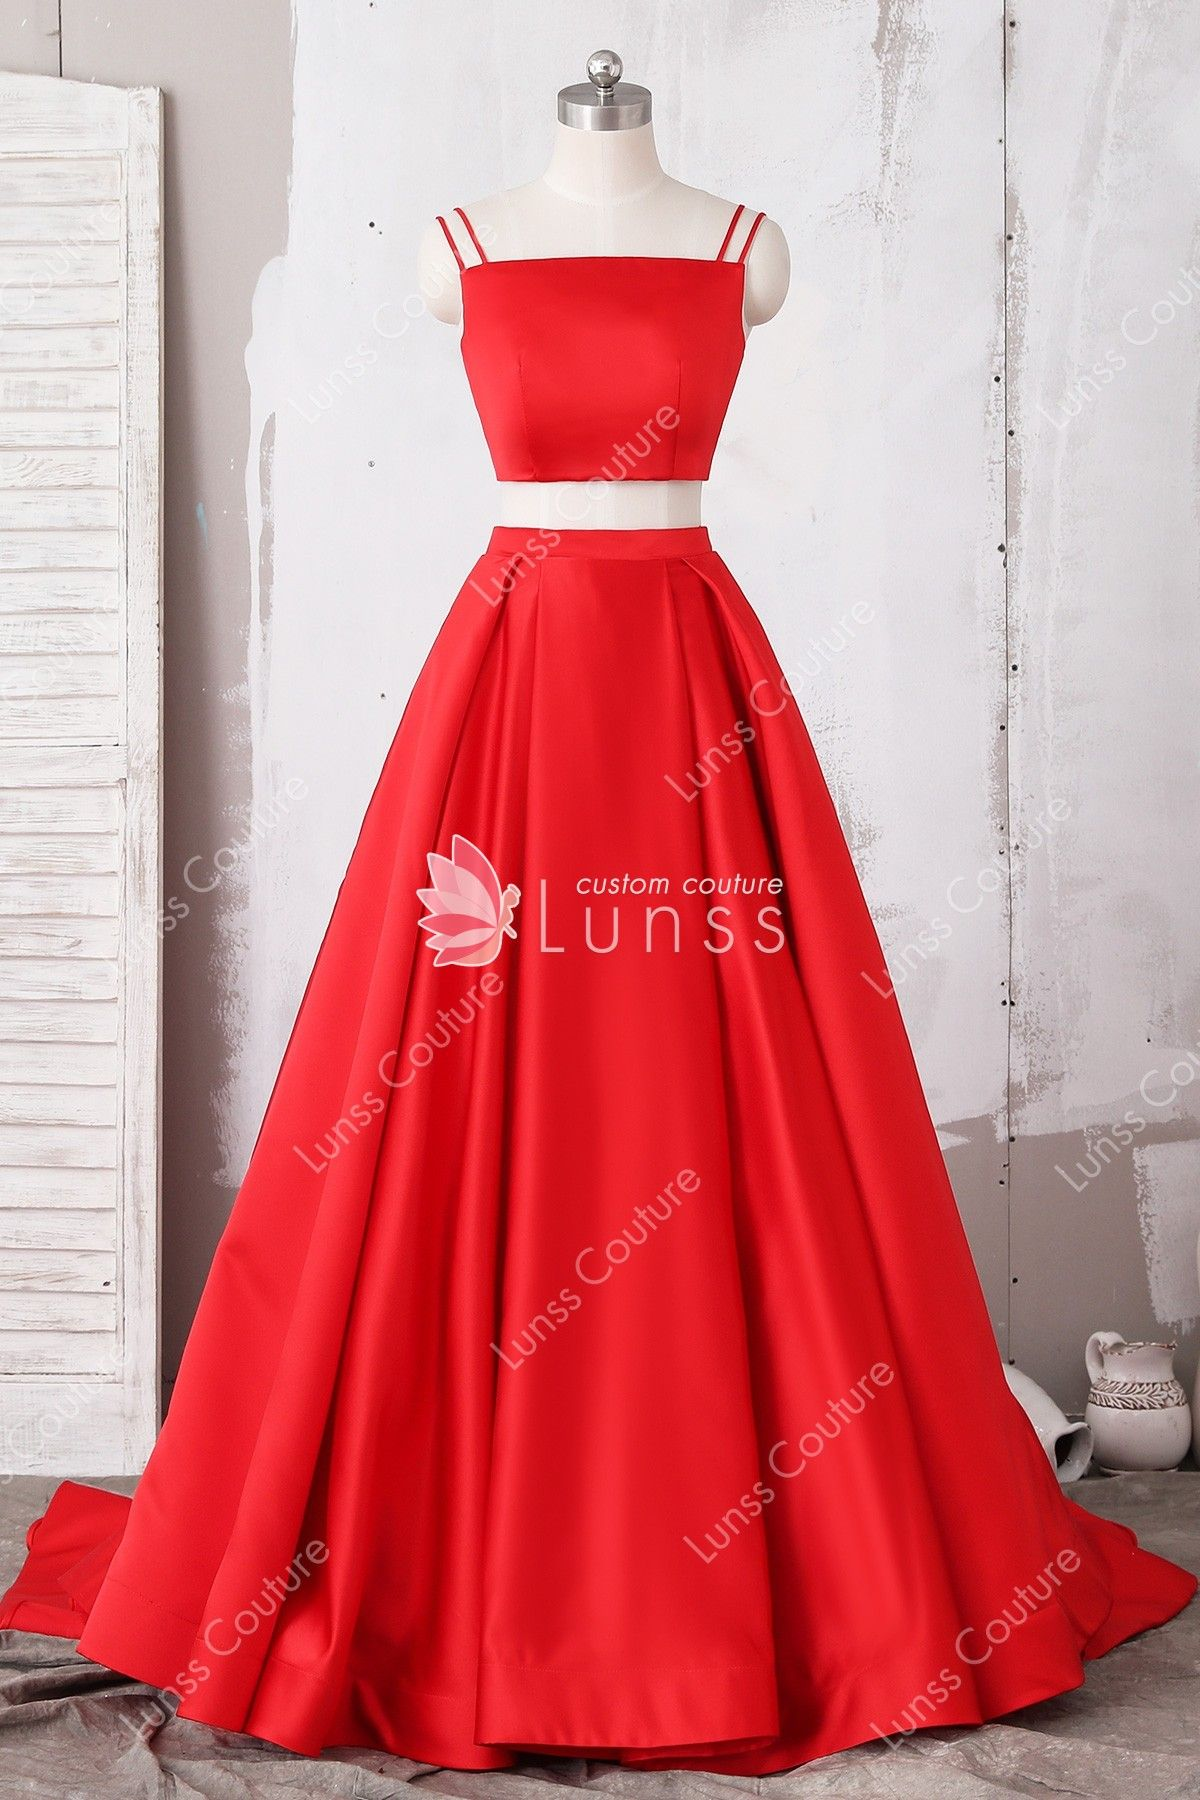 Red Two Piece Satin Puffy Prom Dress With Pockets Prom Dresses With Pockets Puffy Prom Dresses Red Homecoming Dresses [ 1800 x 1200 Pixel ]